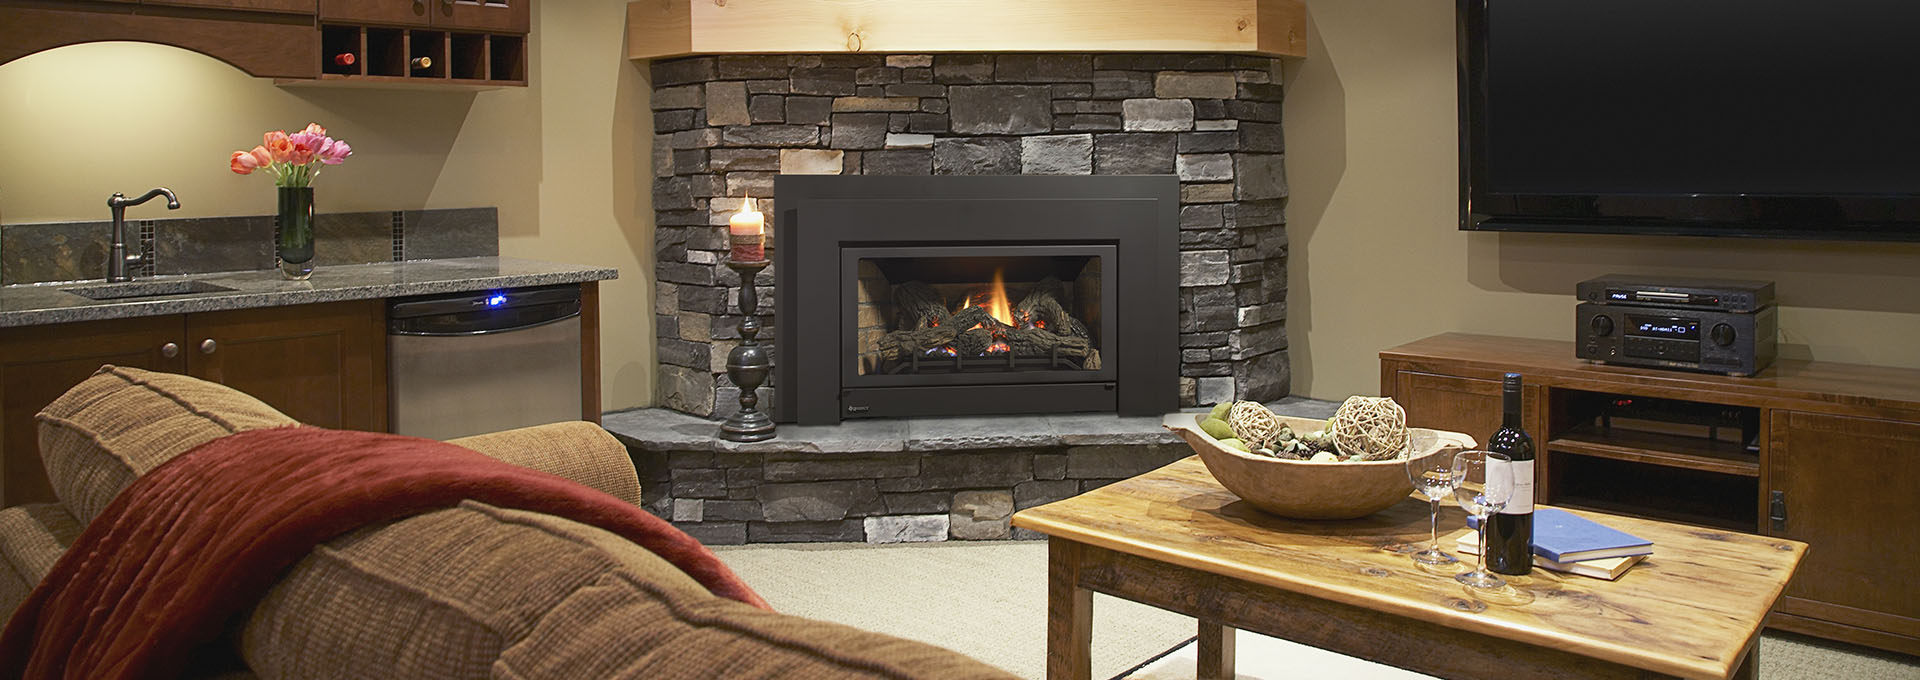 Energy E21 Small Gas Fireplace Insert Regency Fireplace Products